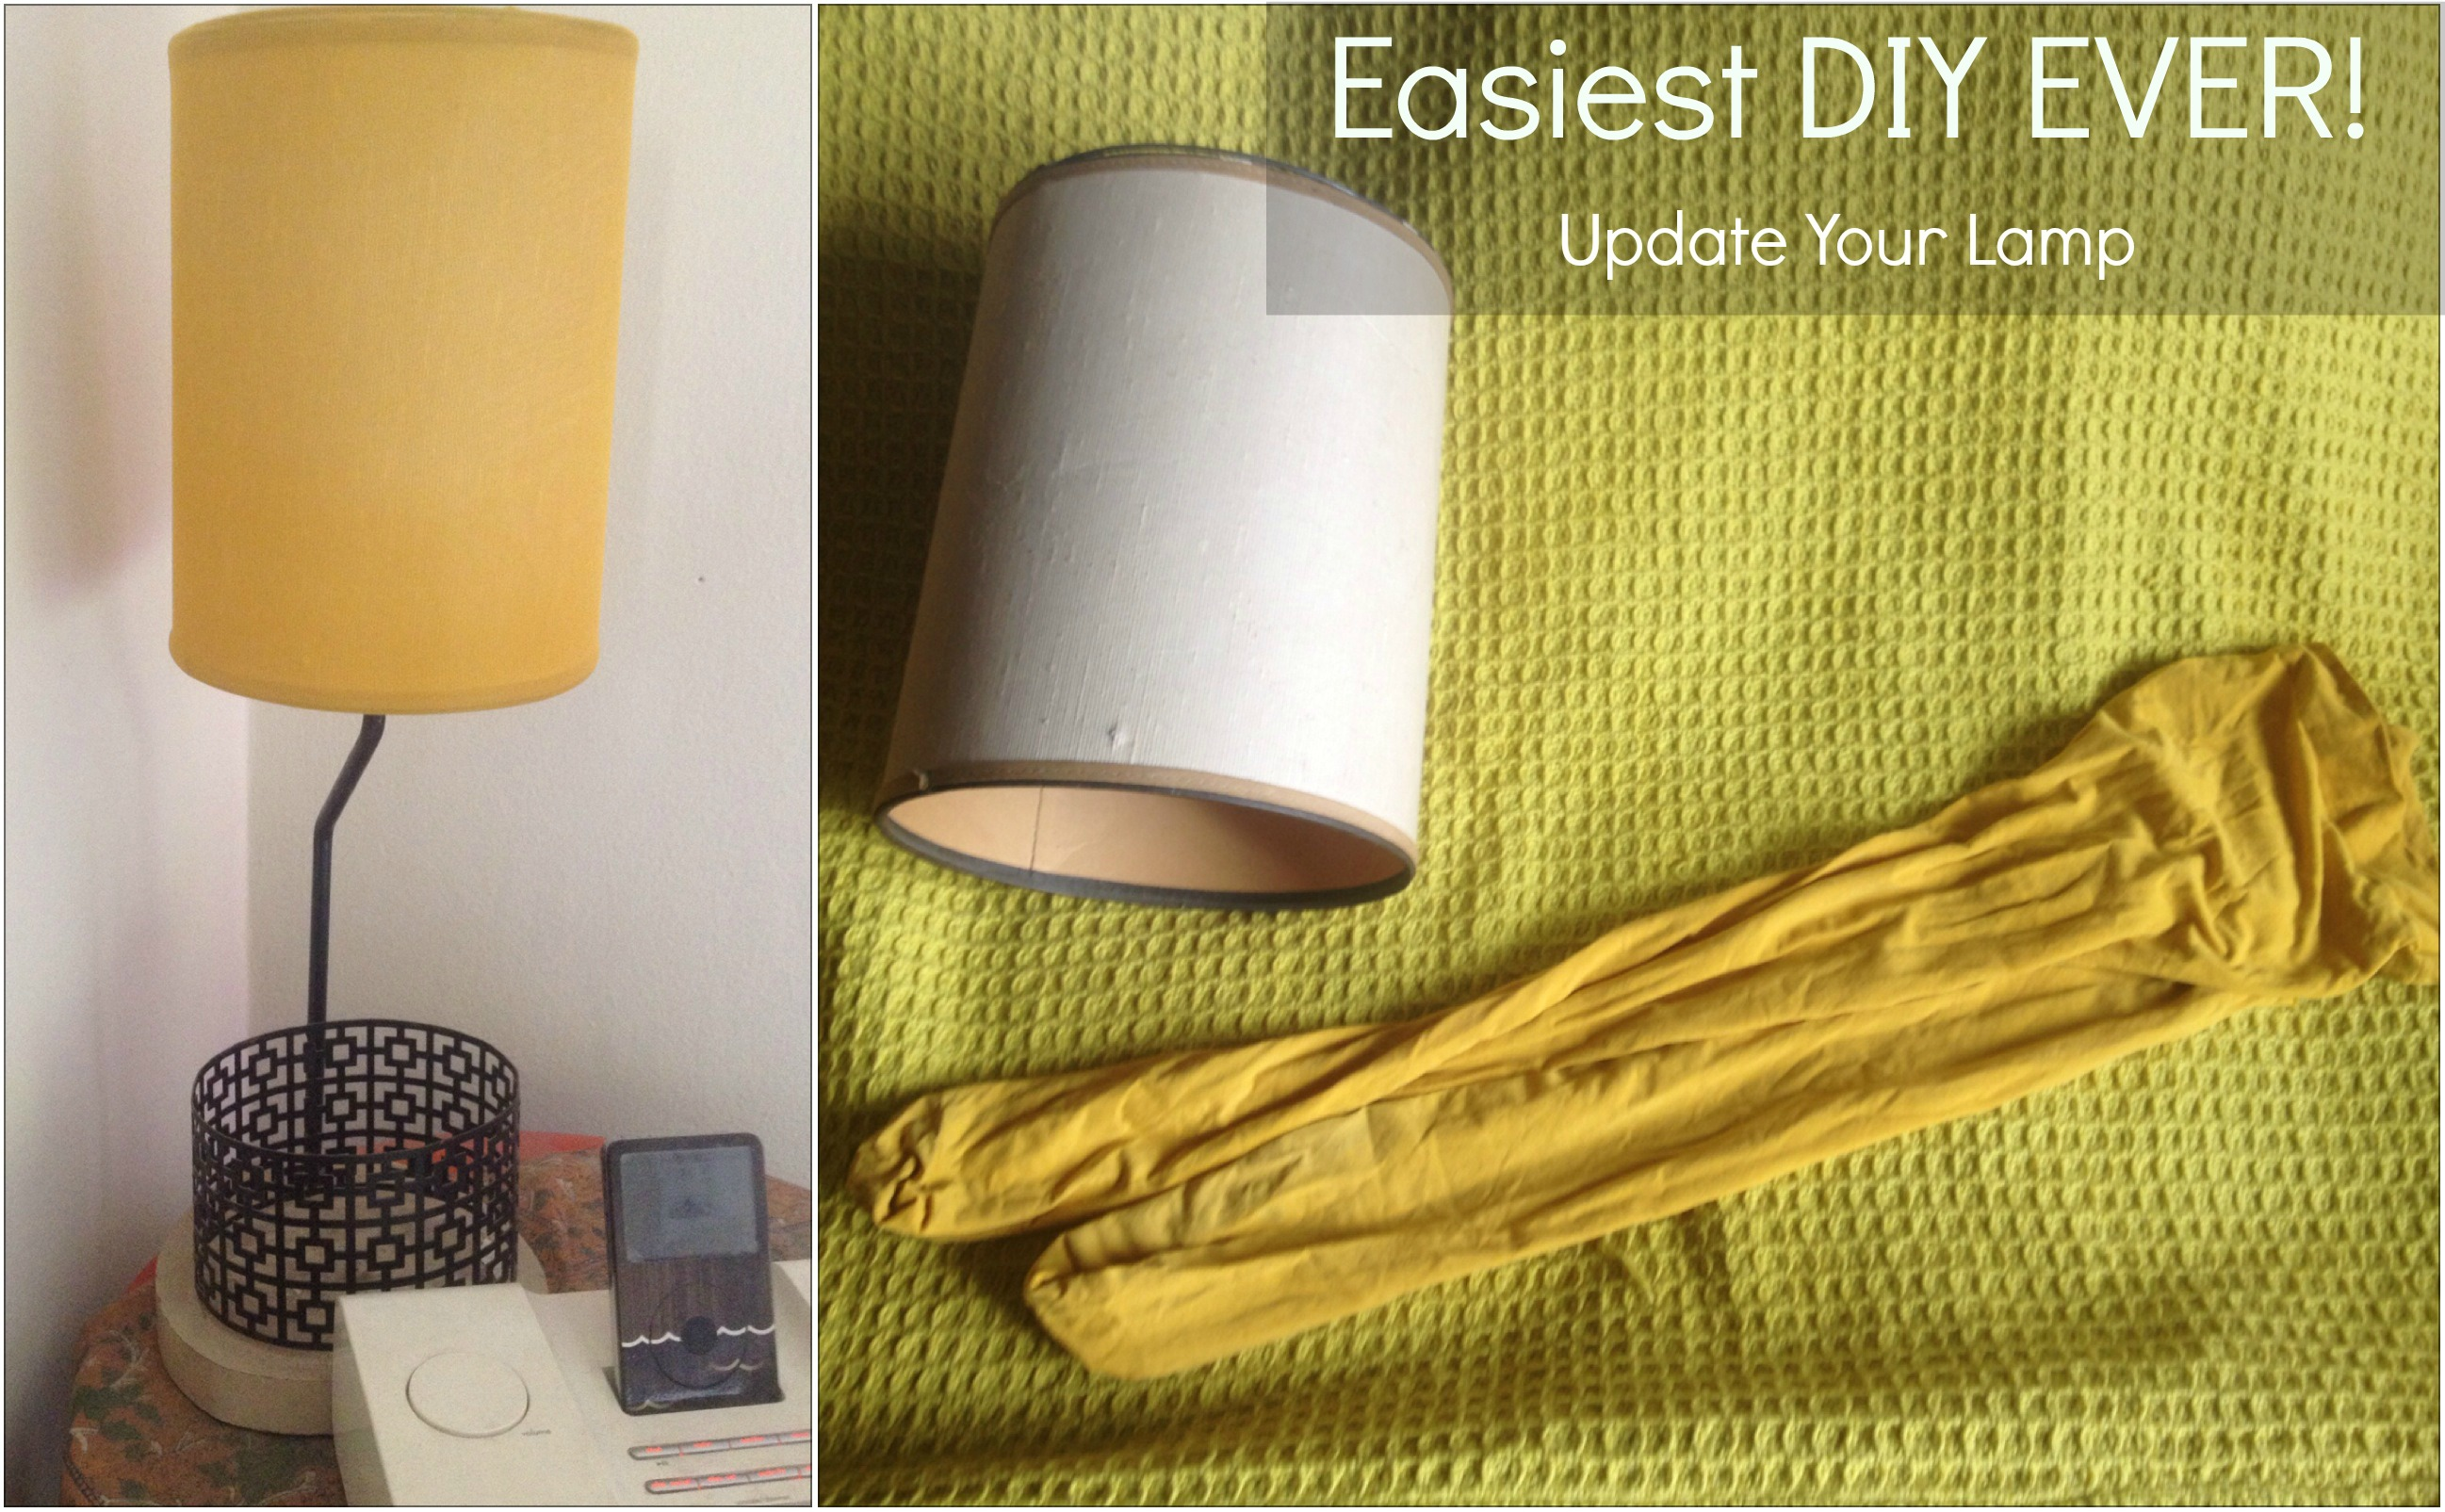 Ha! I Made It! - DIY Lampshade - Made-To-Travel.com